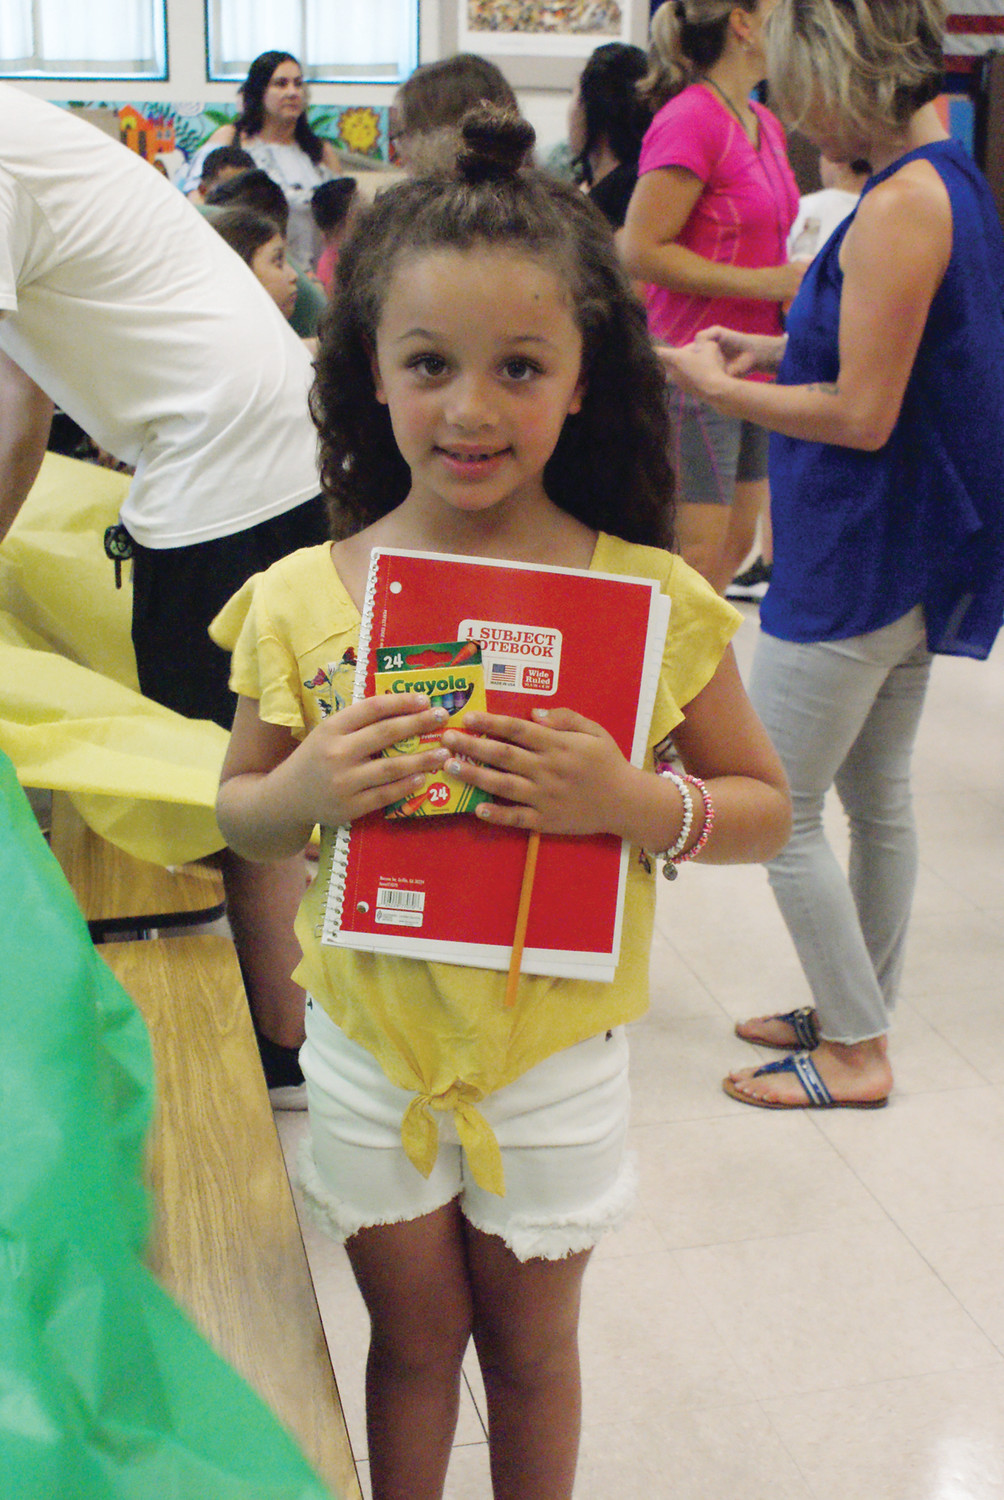 SCHOOL SUPPLIES: Holding her new school supplies at the Chester Barrows Meet & Greet was Starrla Freu, age 6 who entered the first grade this year.